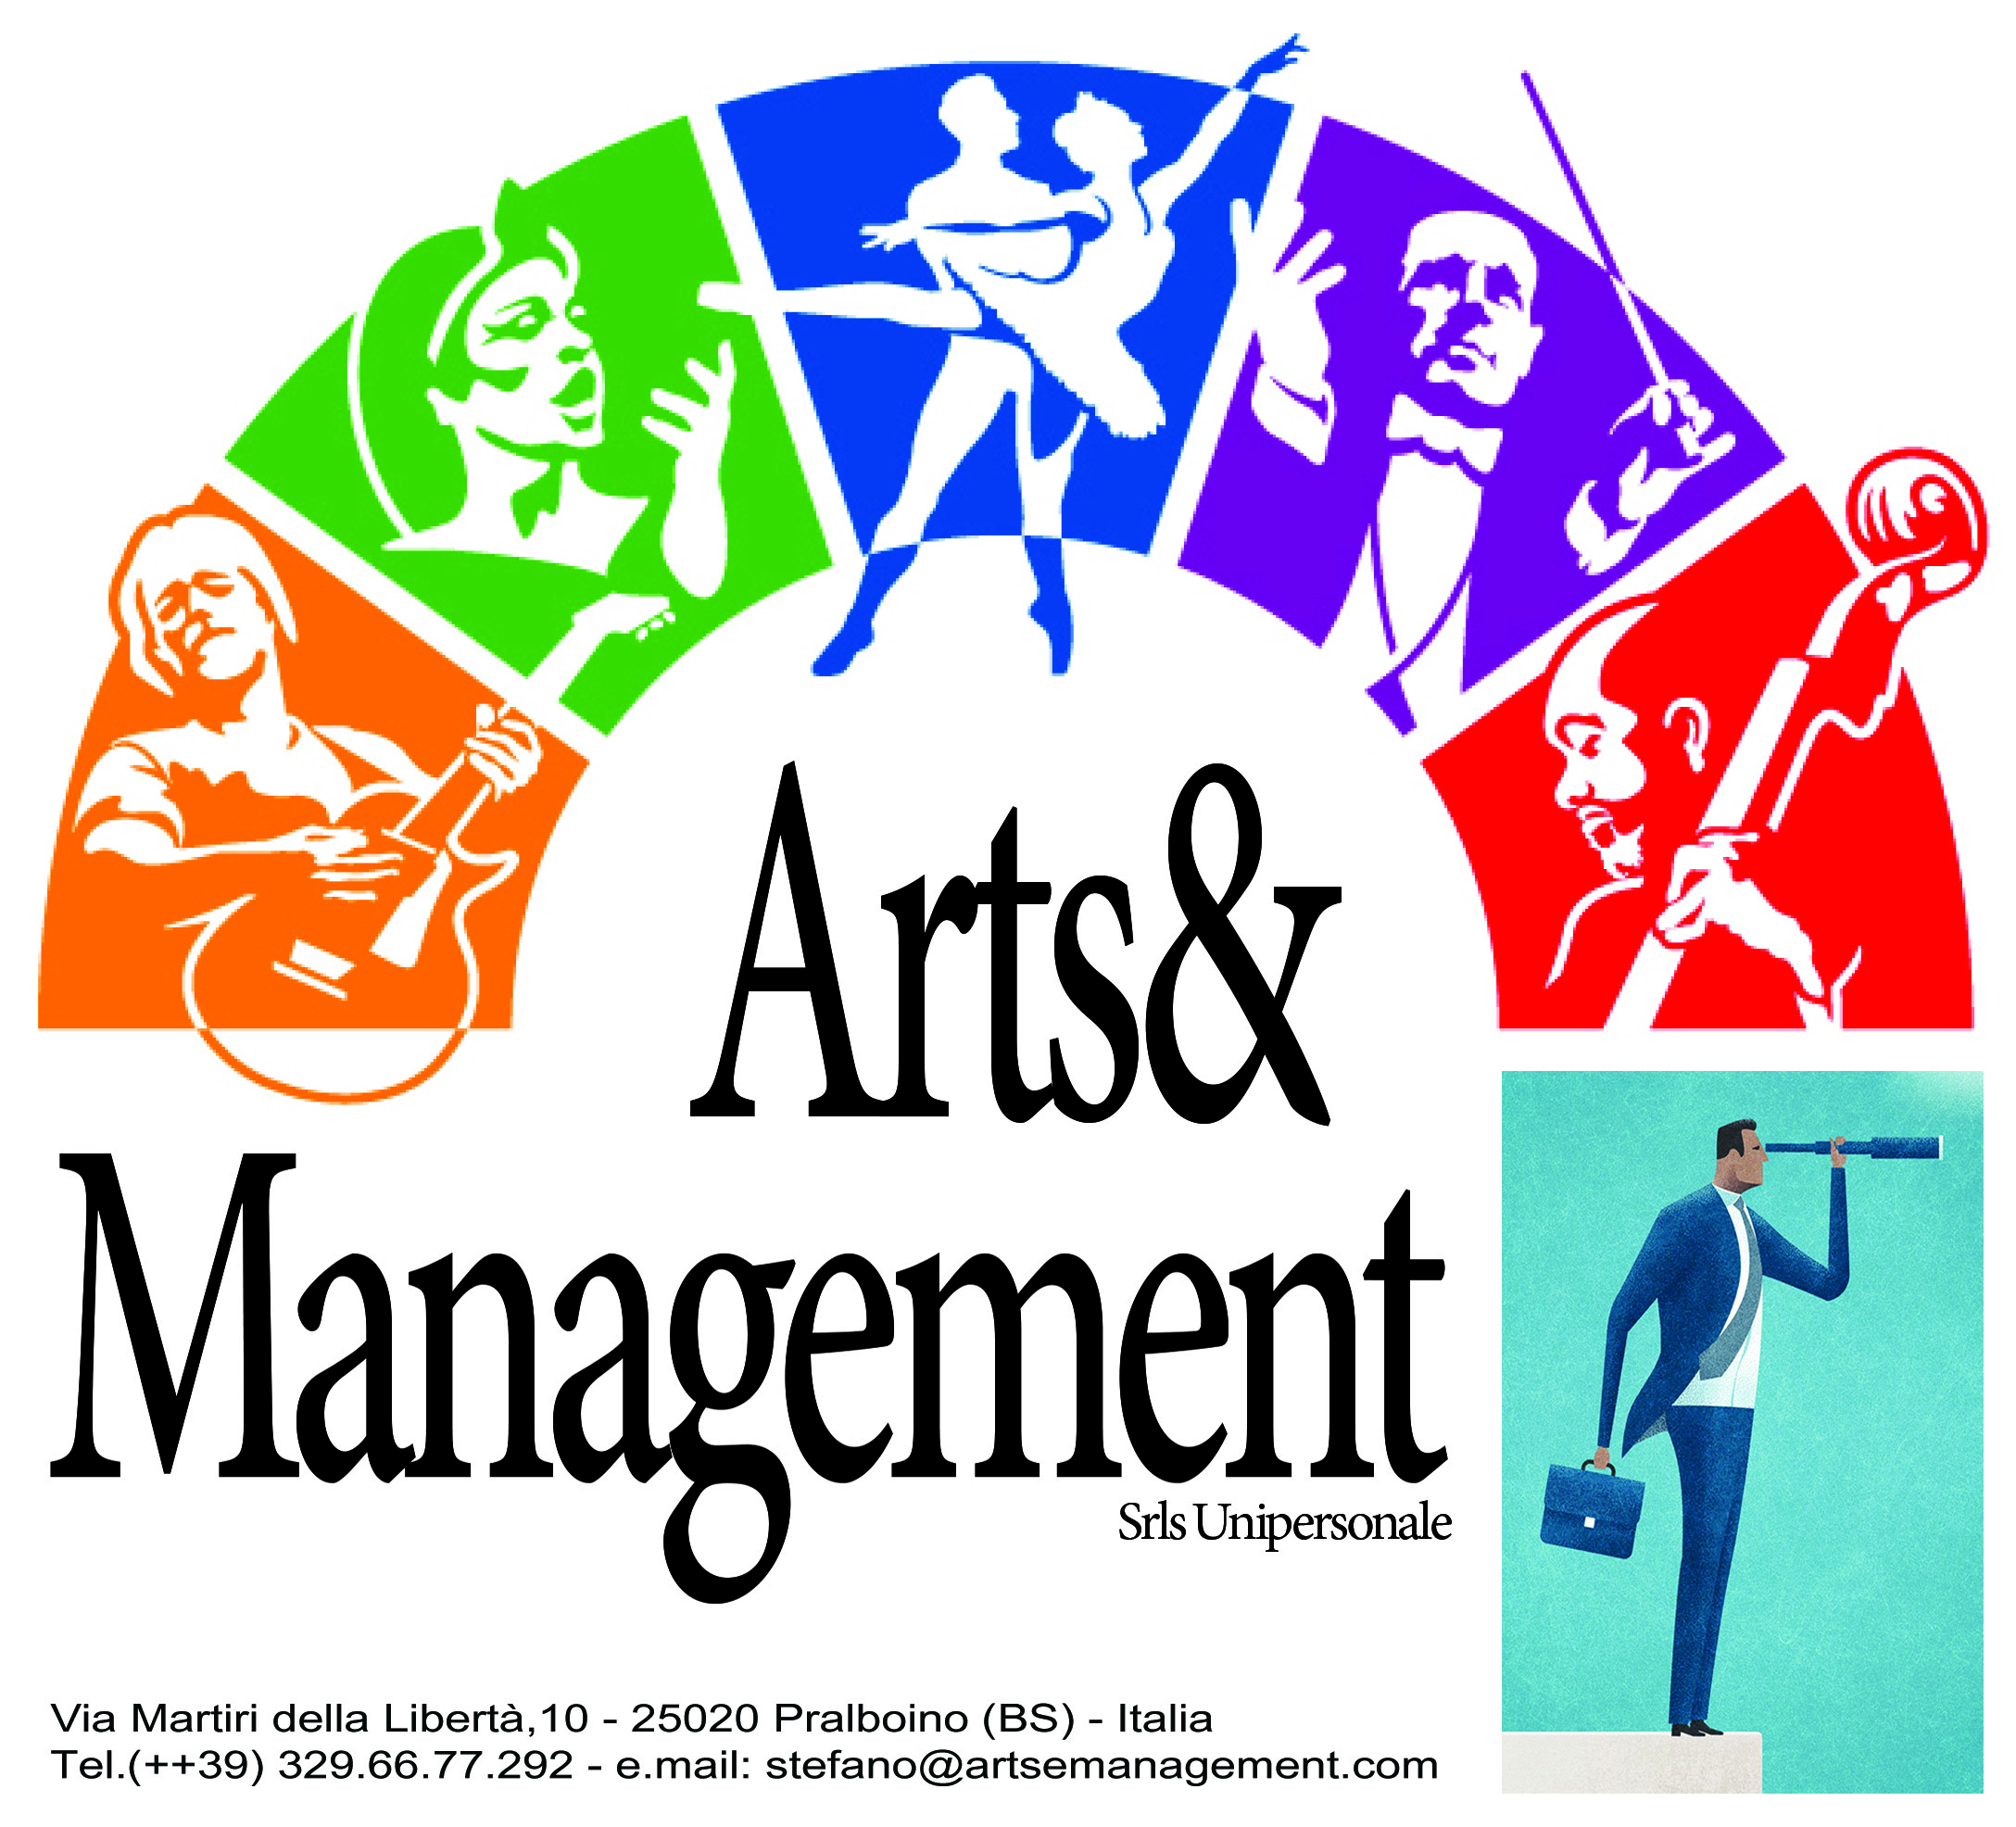 Arts&Management Srls